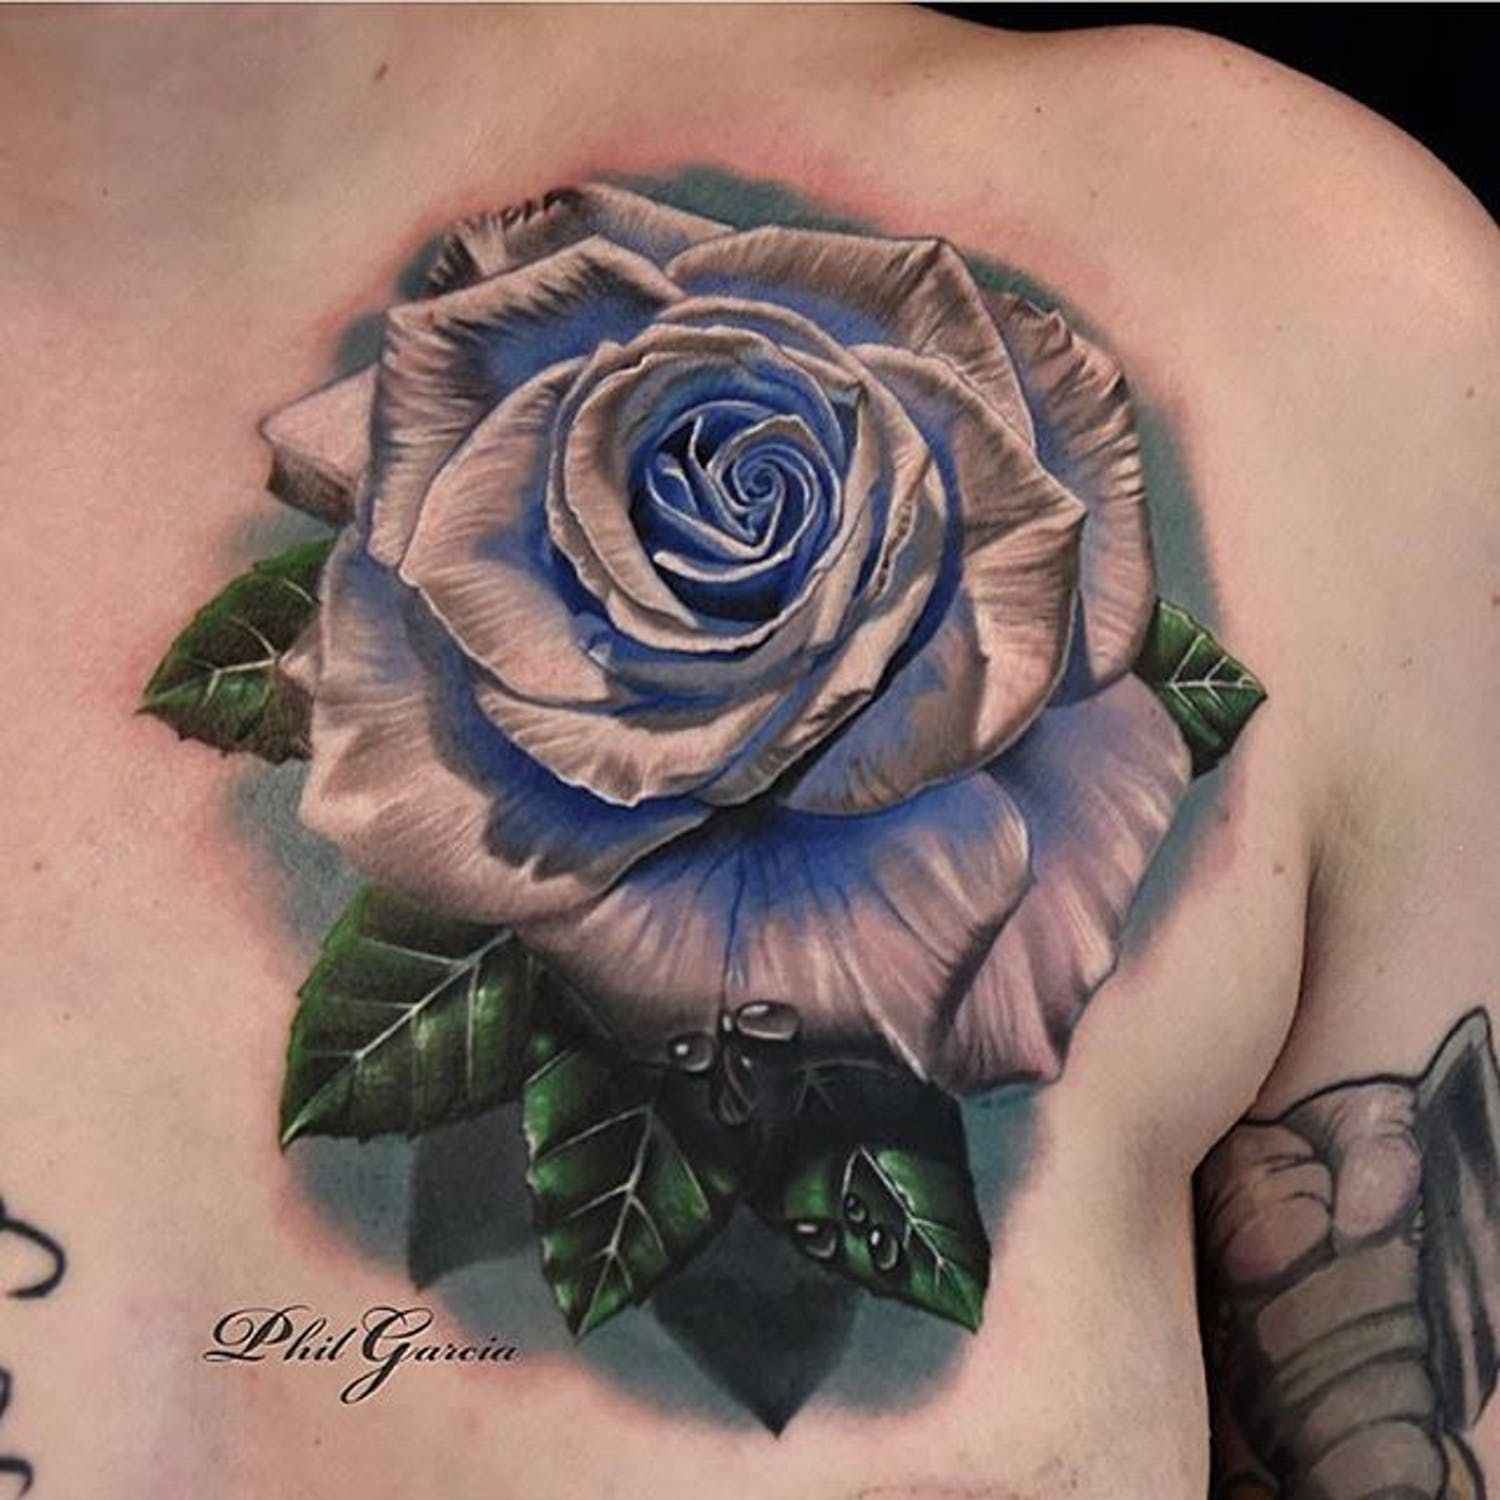 Birth Month Flower Tattoo Ideas Meaning White Rose Tattoos Blue Rose Tattoos Realistic Rose Tattoo